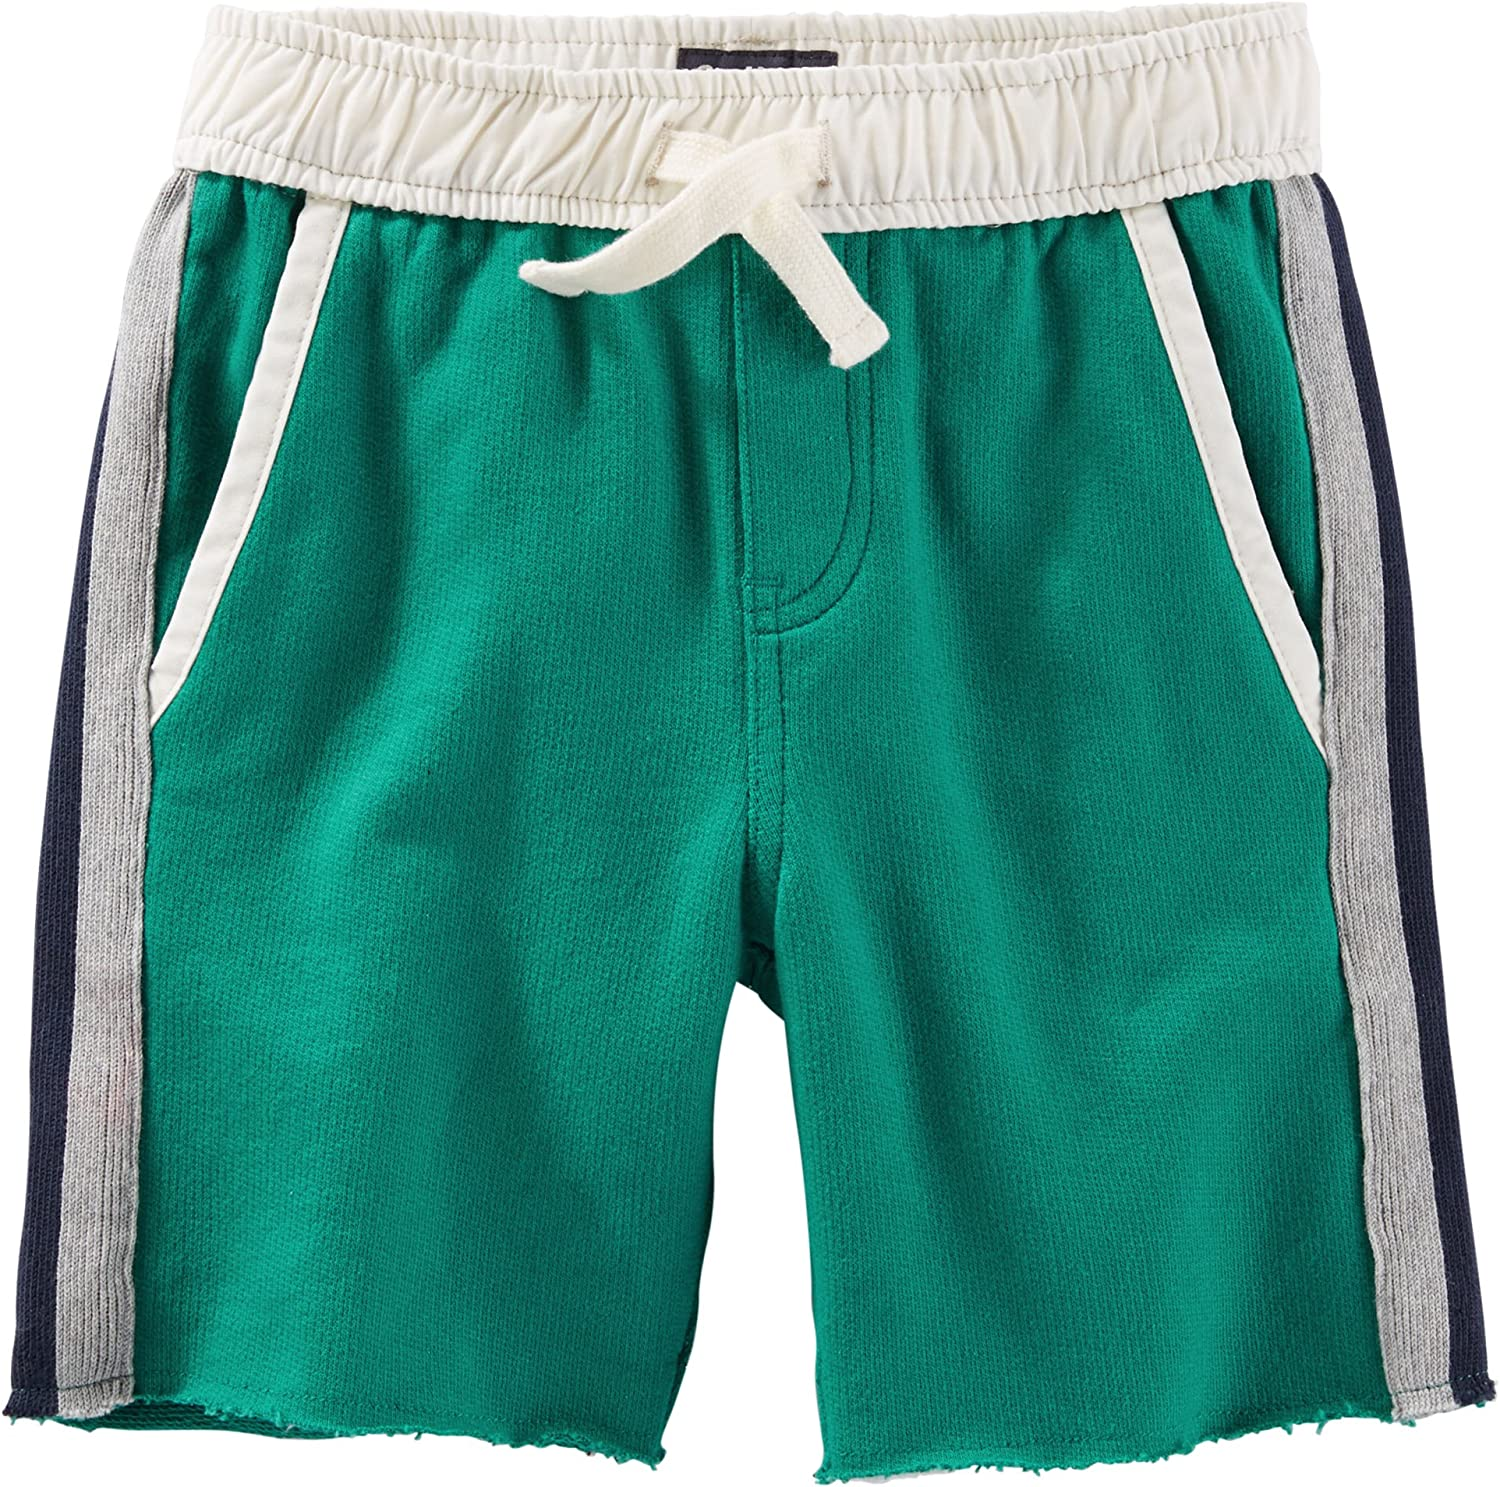 Carters Boys French Terry Shorts Green